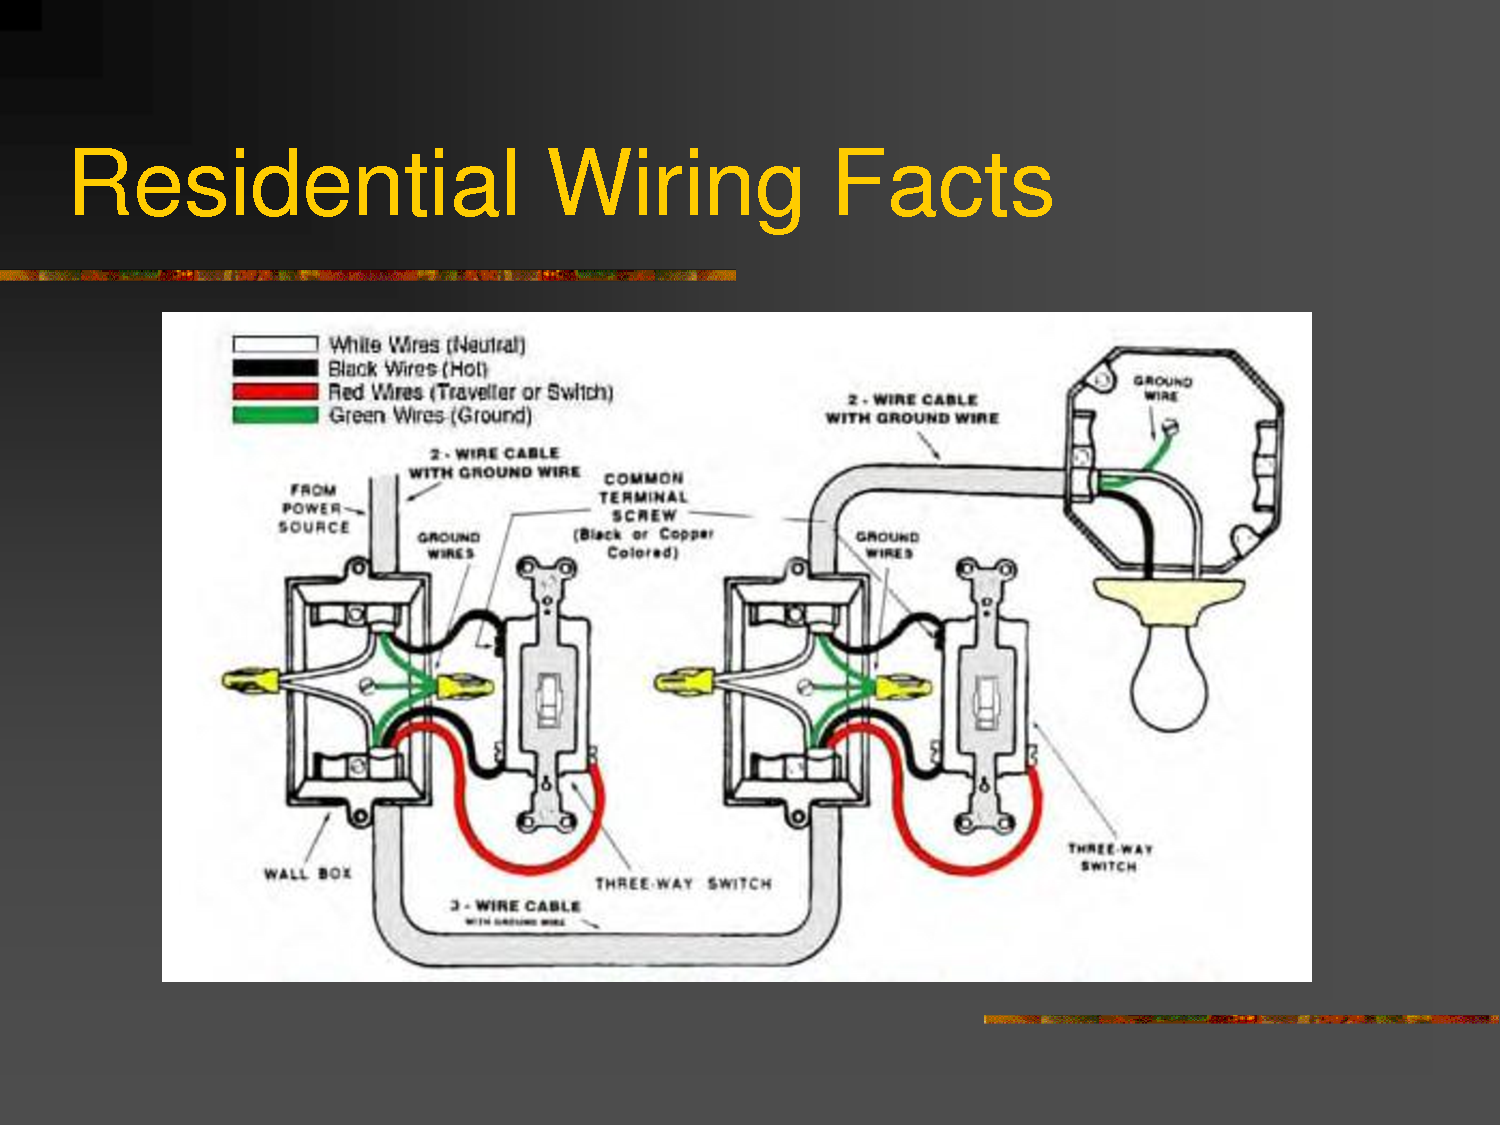 85f6d7068dddf27aa5737fc68962f04e 4 best images of residential wiring diagrams house electrical household switch wiring diagrams at fashall.co